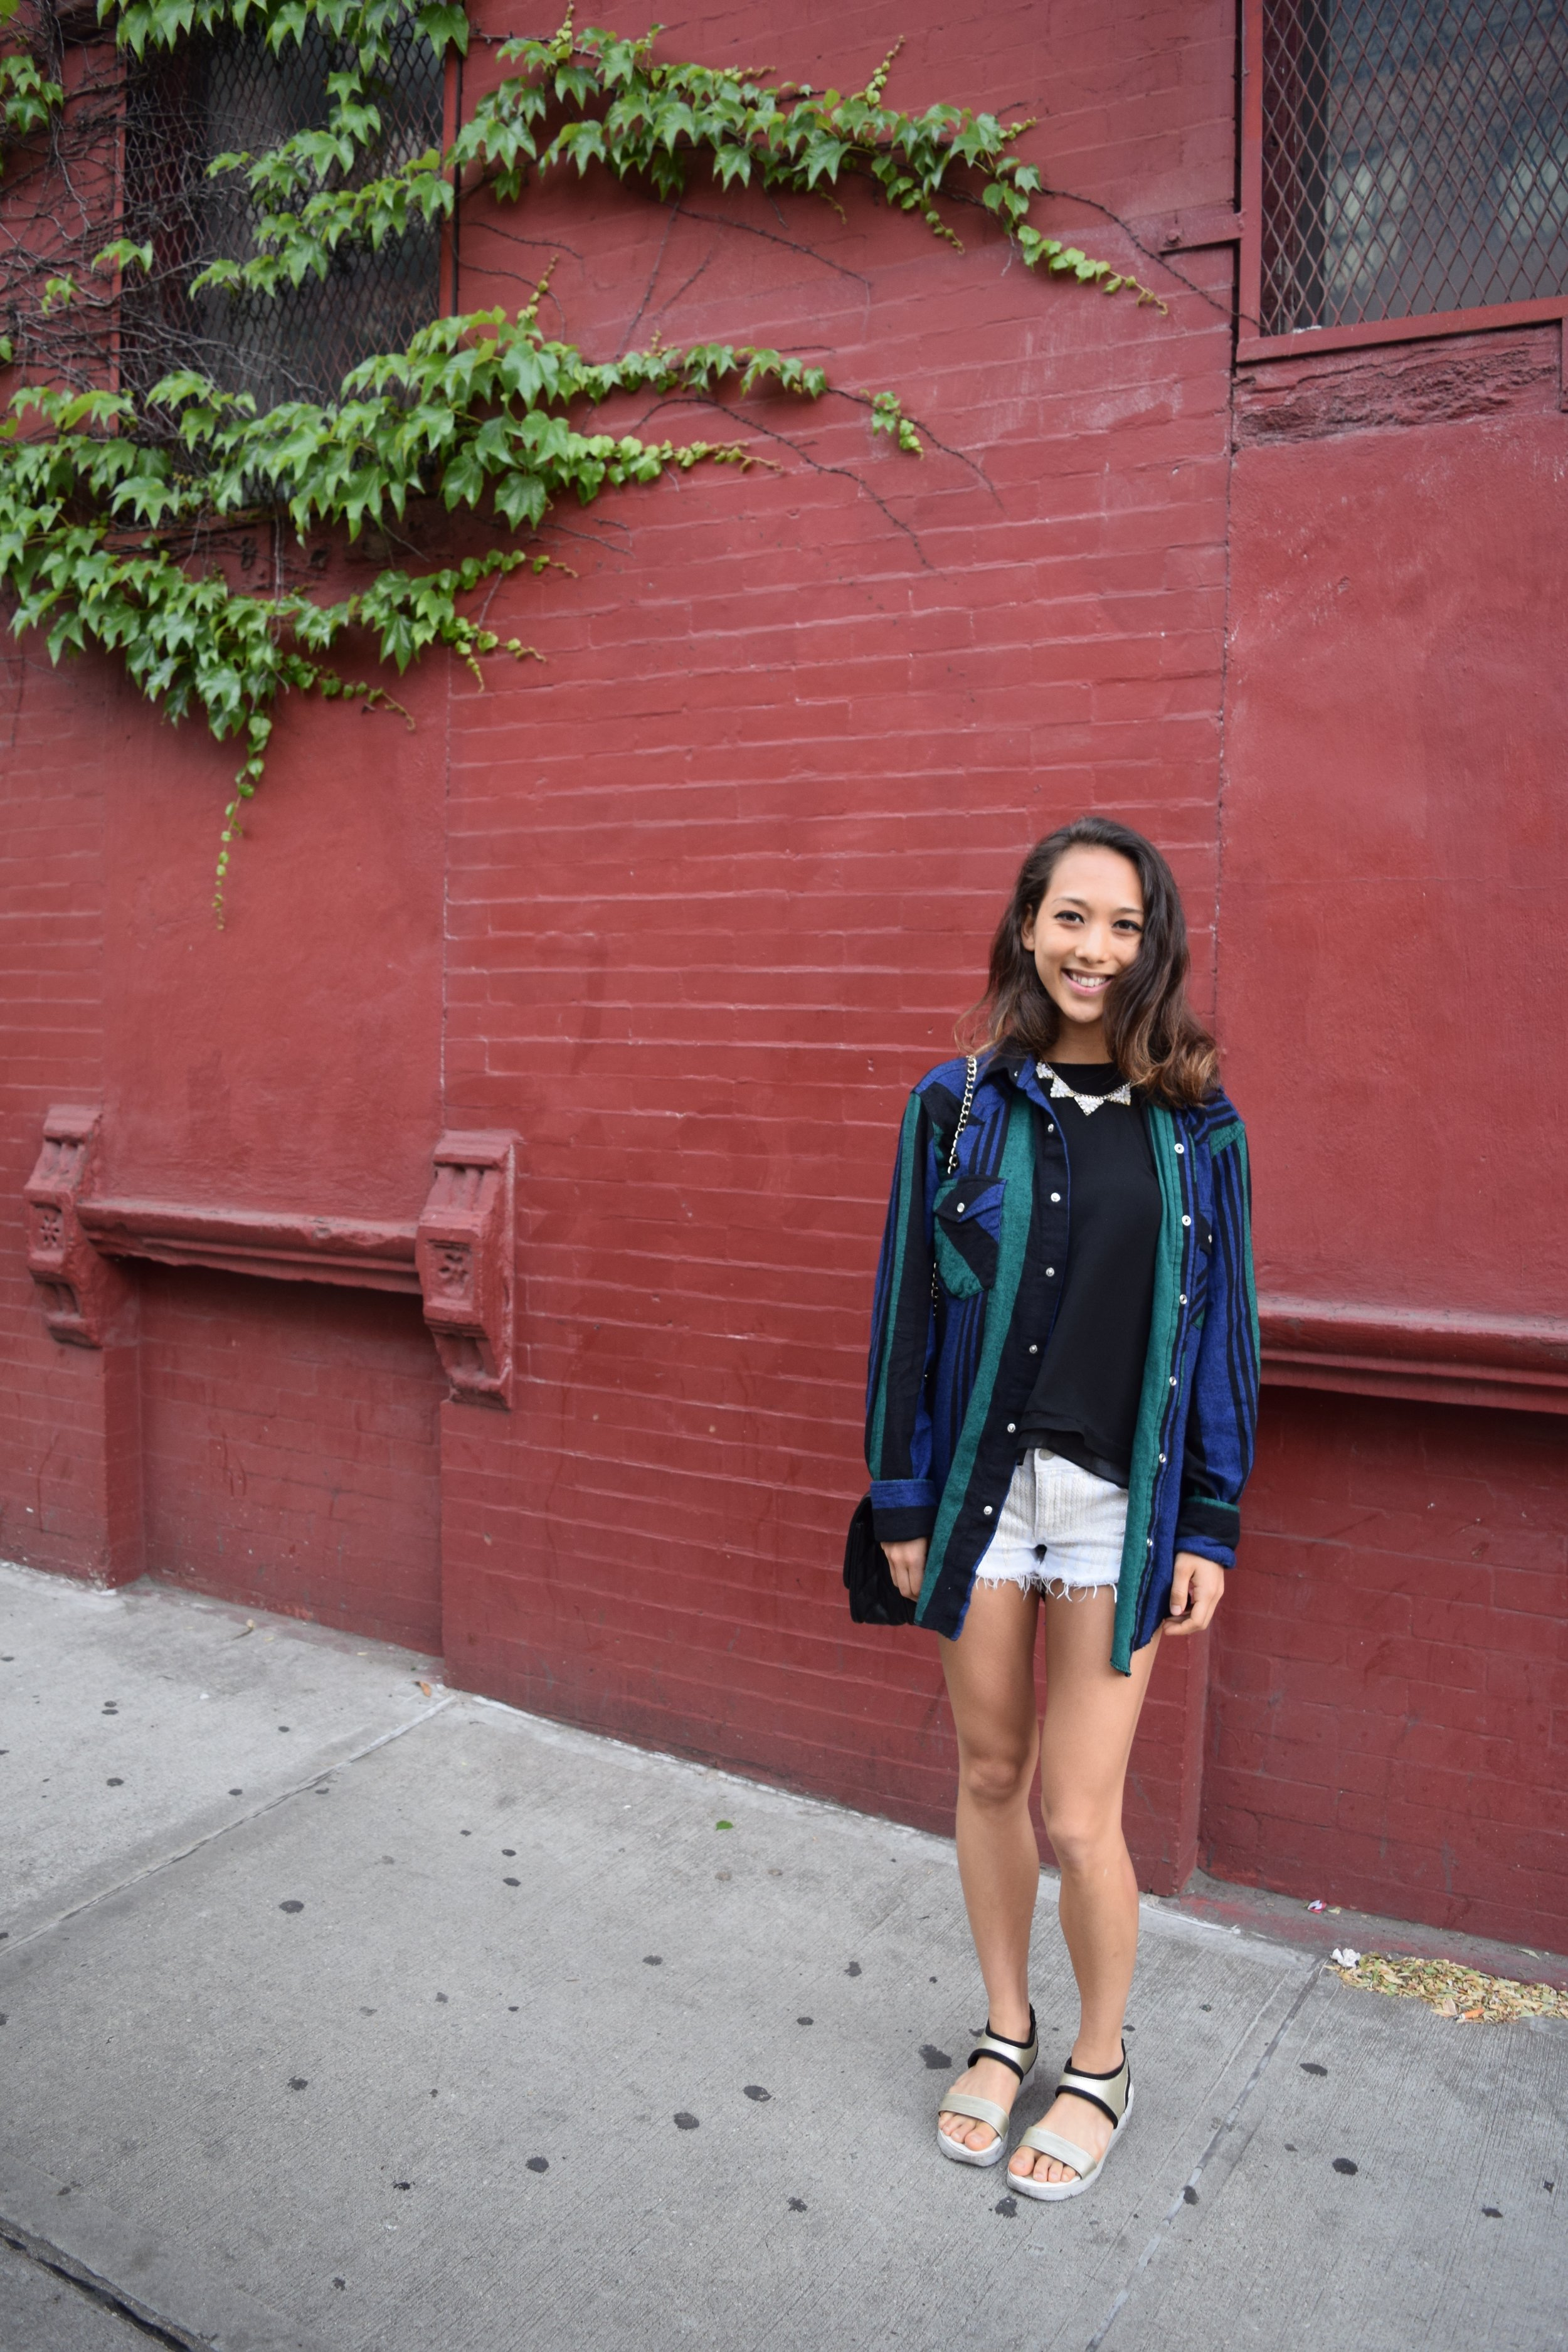 Guest Post by Anna Wildman from Running Vegan NYC.   Anna is a plant-based health and fitness blogger living in New York City. She enjoys running, cooking, and taking pictures of the food she cooks (as a millennial would). You can follow her on her website, runningvegannyc.com , or on Instagram, @runningvegannyc .